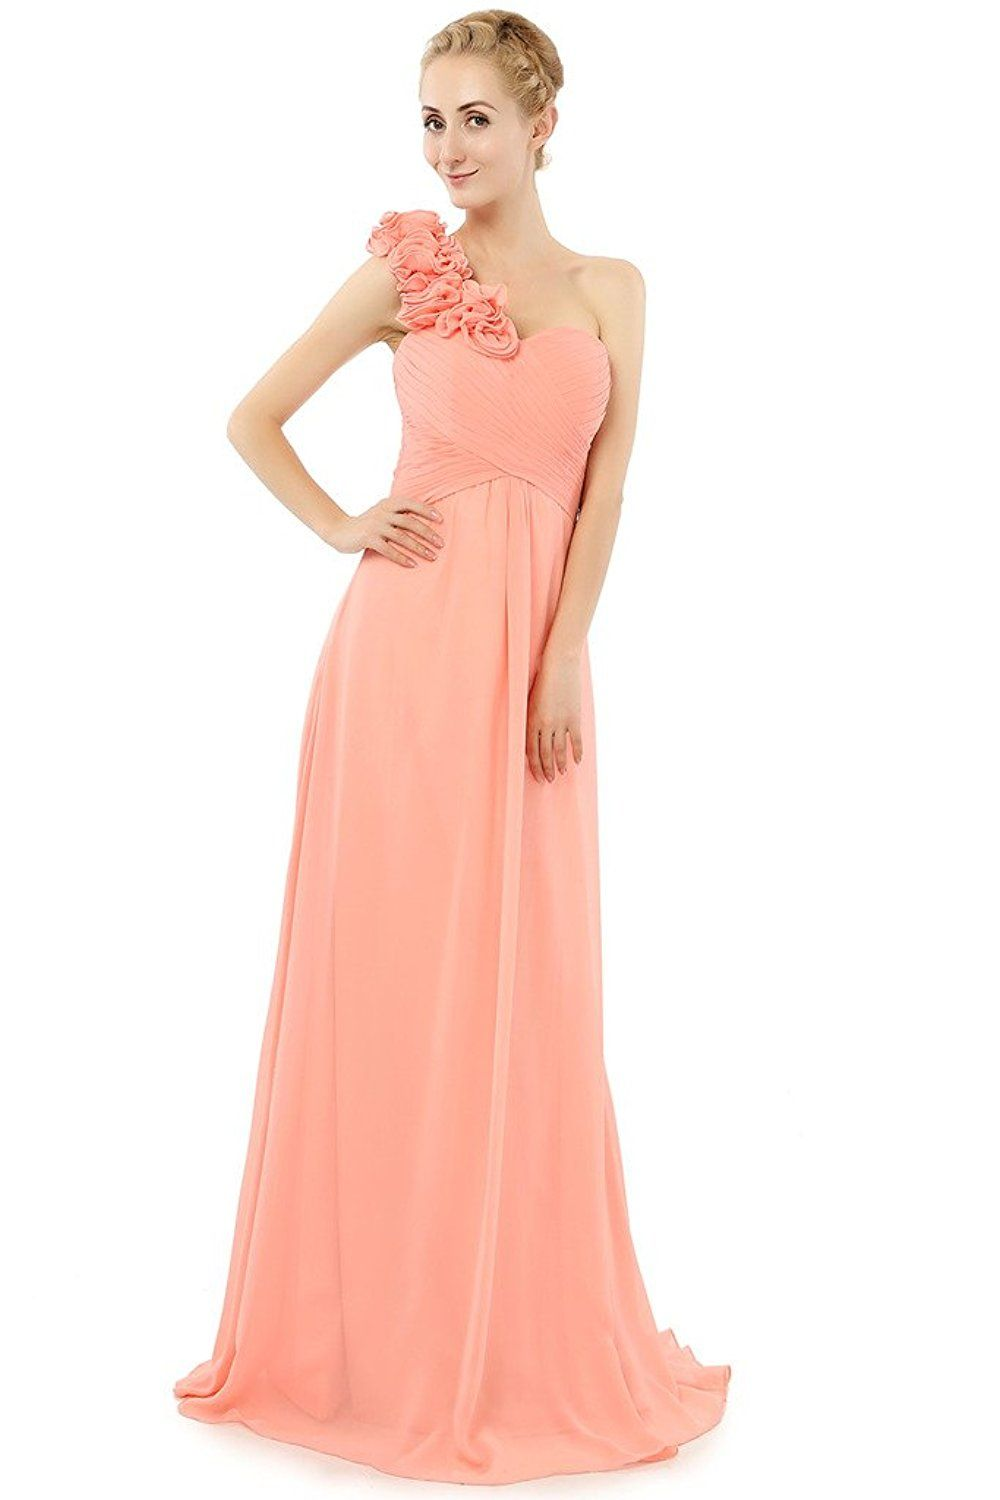 Dressy new star one shoulder bridesmaid chiffon prom dresses long